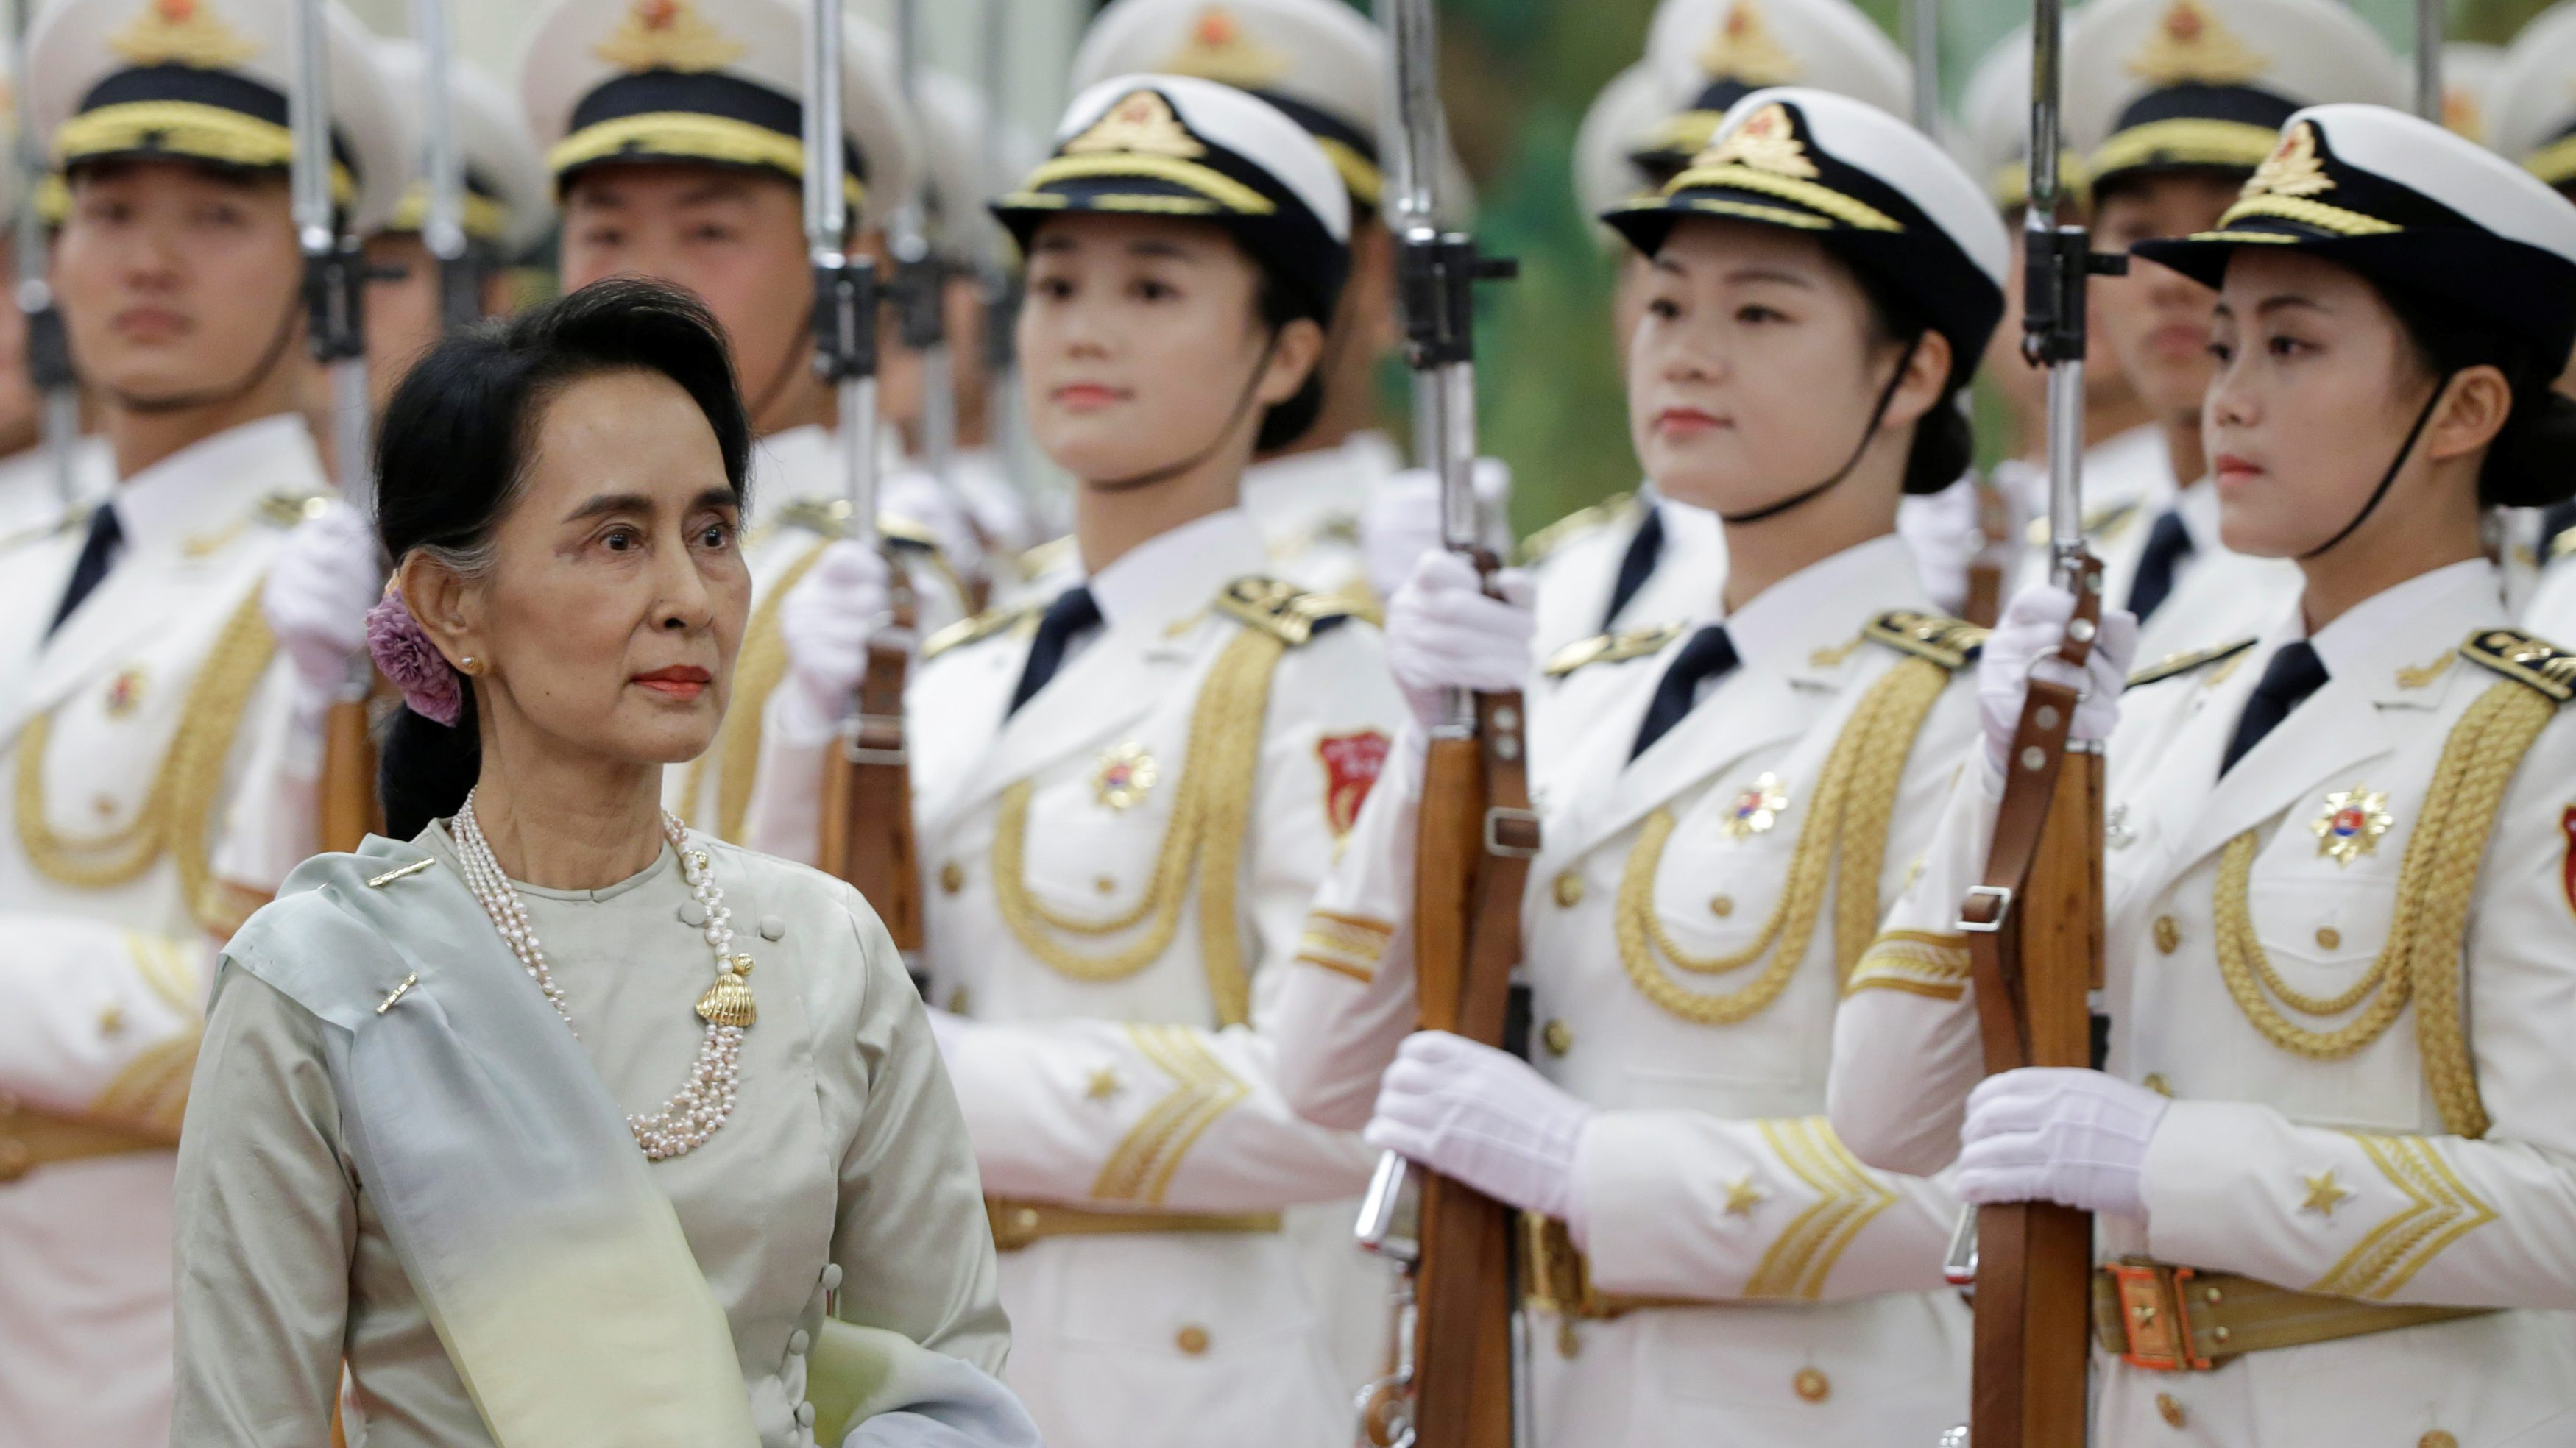 Myanmar State Counselor Aung San Suu Kyi reviews honour guards during a welcoming ceremony at the Great Hall of the People in Beijing, China, August 18, 2016. REUTERS/Jason Lee - S1AETWCTVVAA